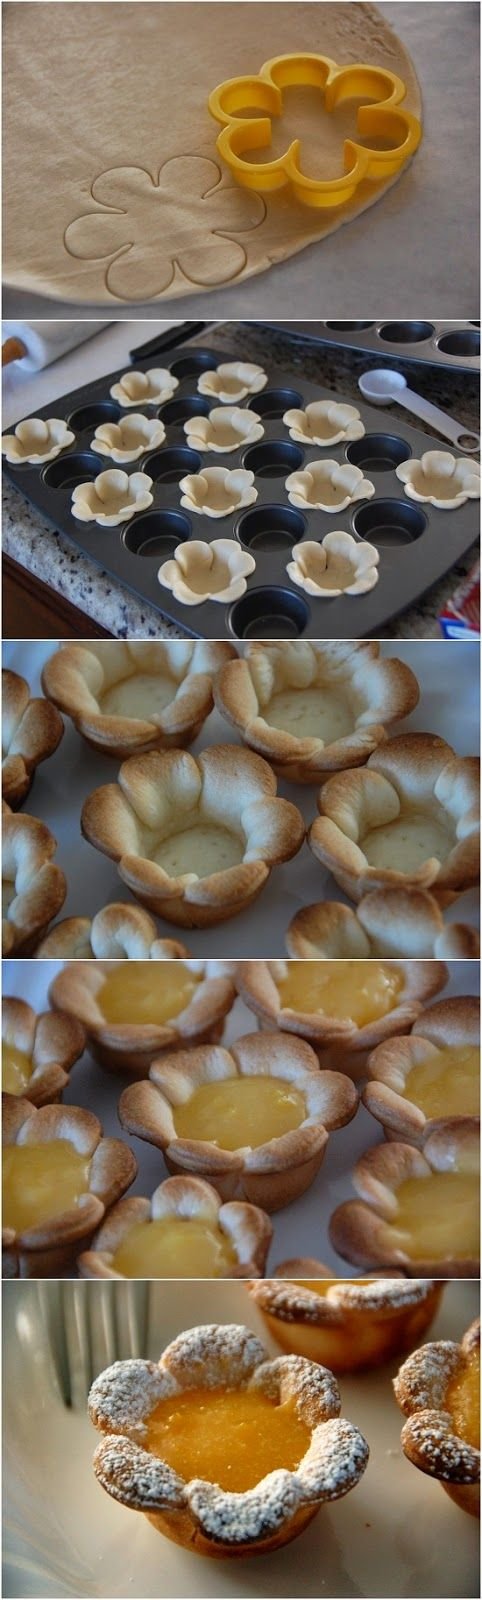 Flower shaped Mini Lemon Curd Tarts  Could do this with the pumpkin instead